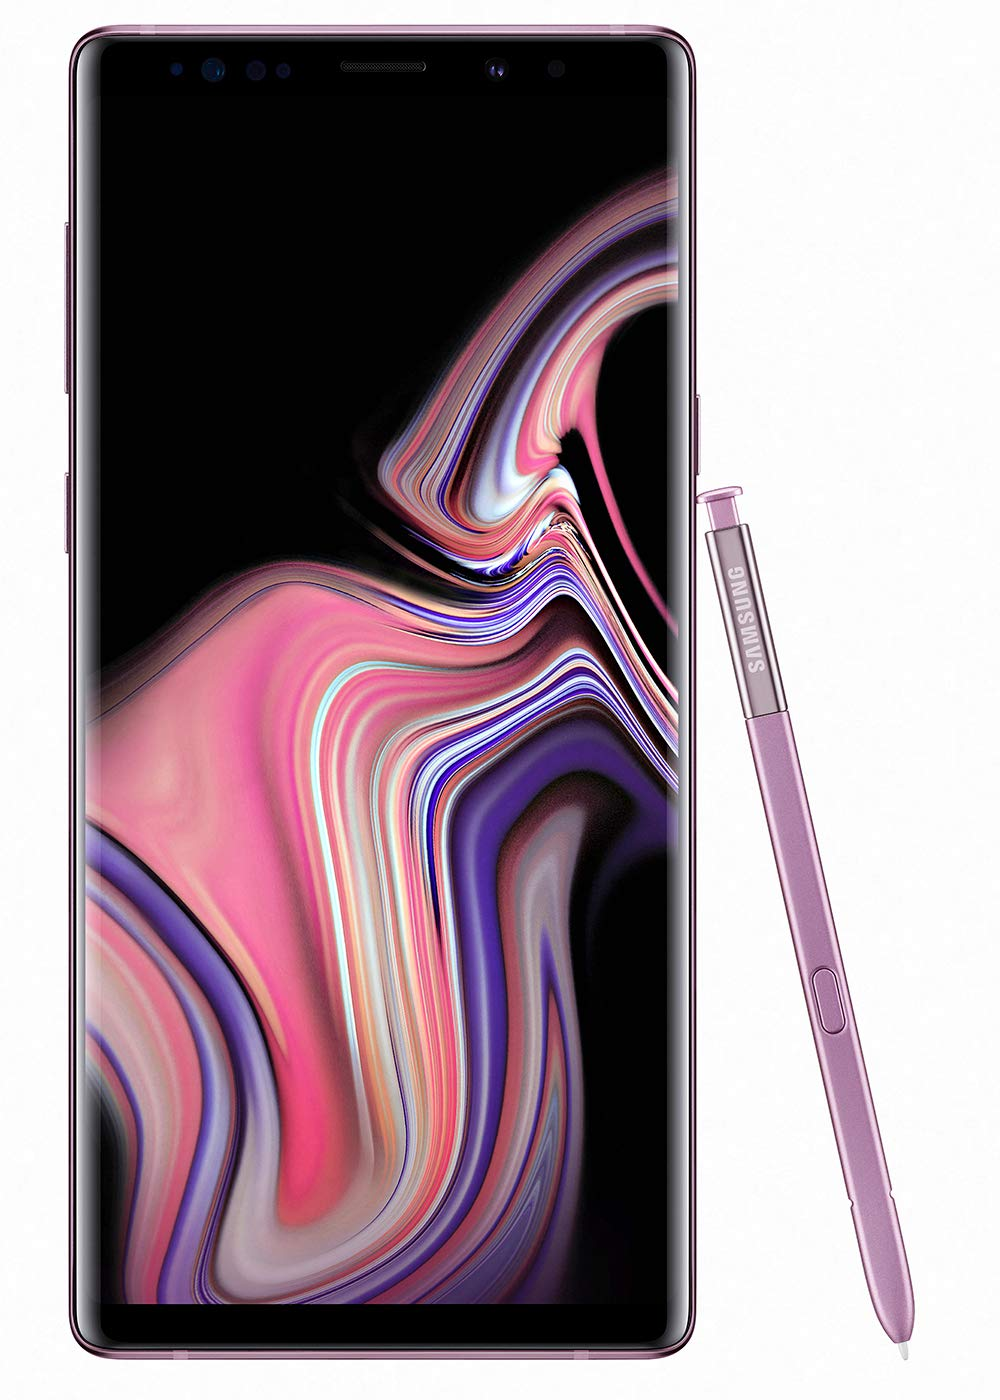 Samsung Galaxy Note 9 (SM-N960F/DS) 6GB / 128GB (Lavender Purple) 6.4-inches LTE Dual SIM (GSM ONLY, NO CDMA) Factory Unlocked - International Stock No Warranty by Samsung